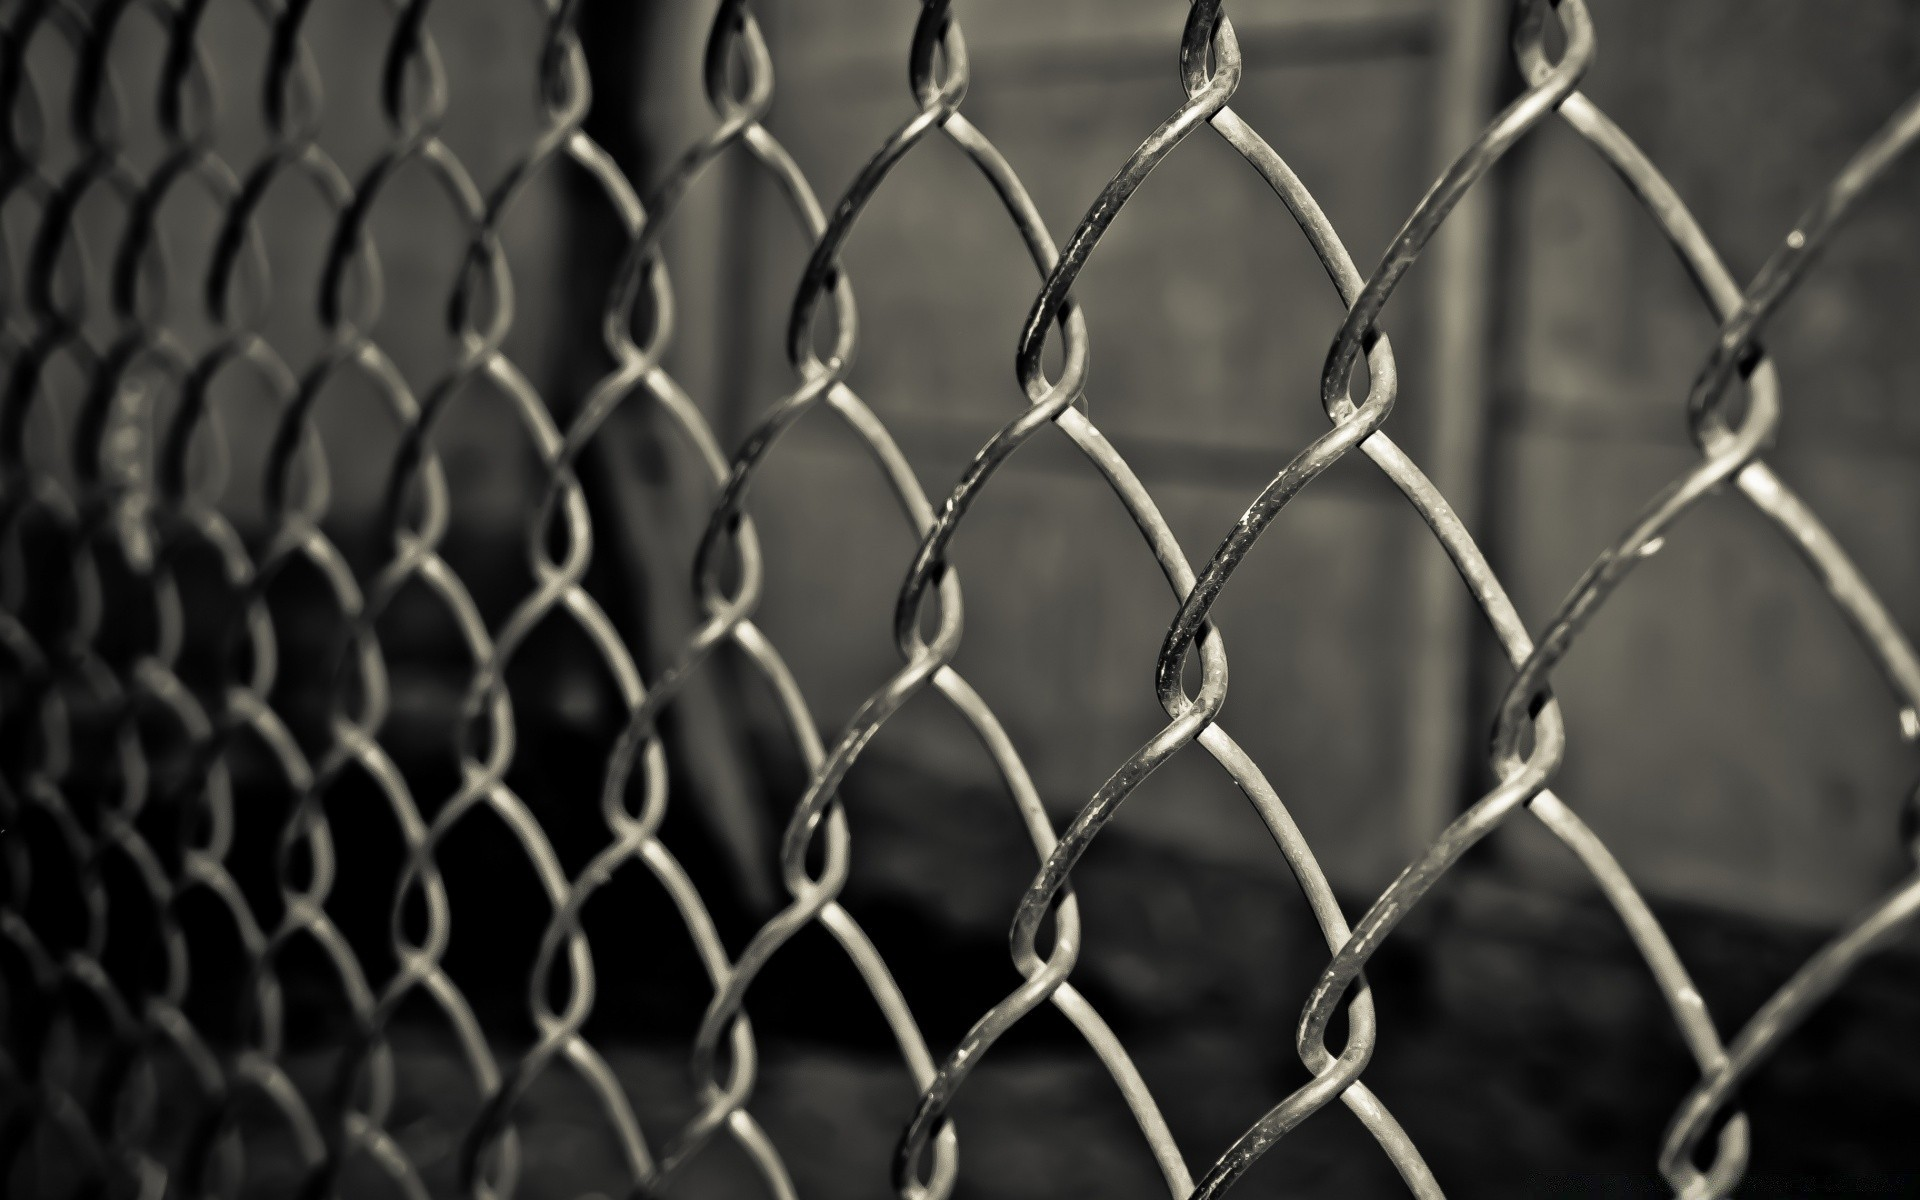 Chain Link Fence Wallpaper: Phone Wallpapers